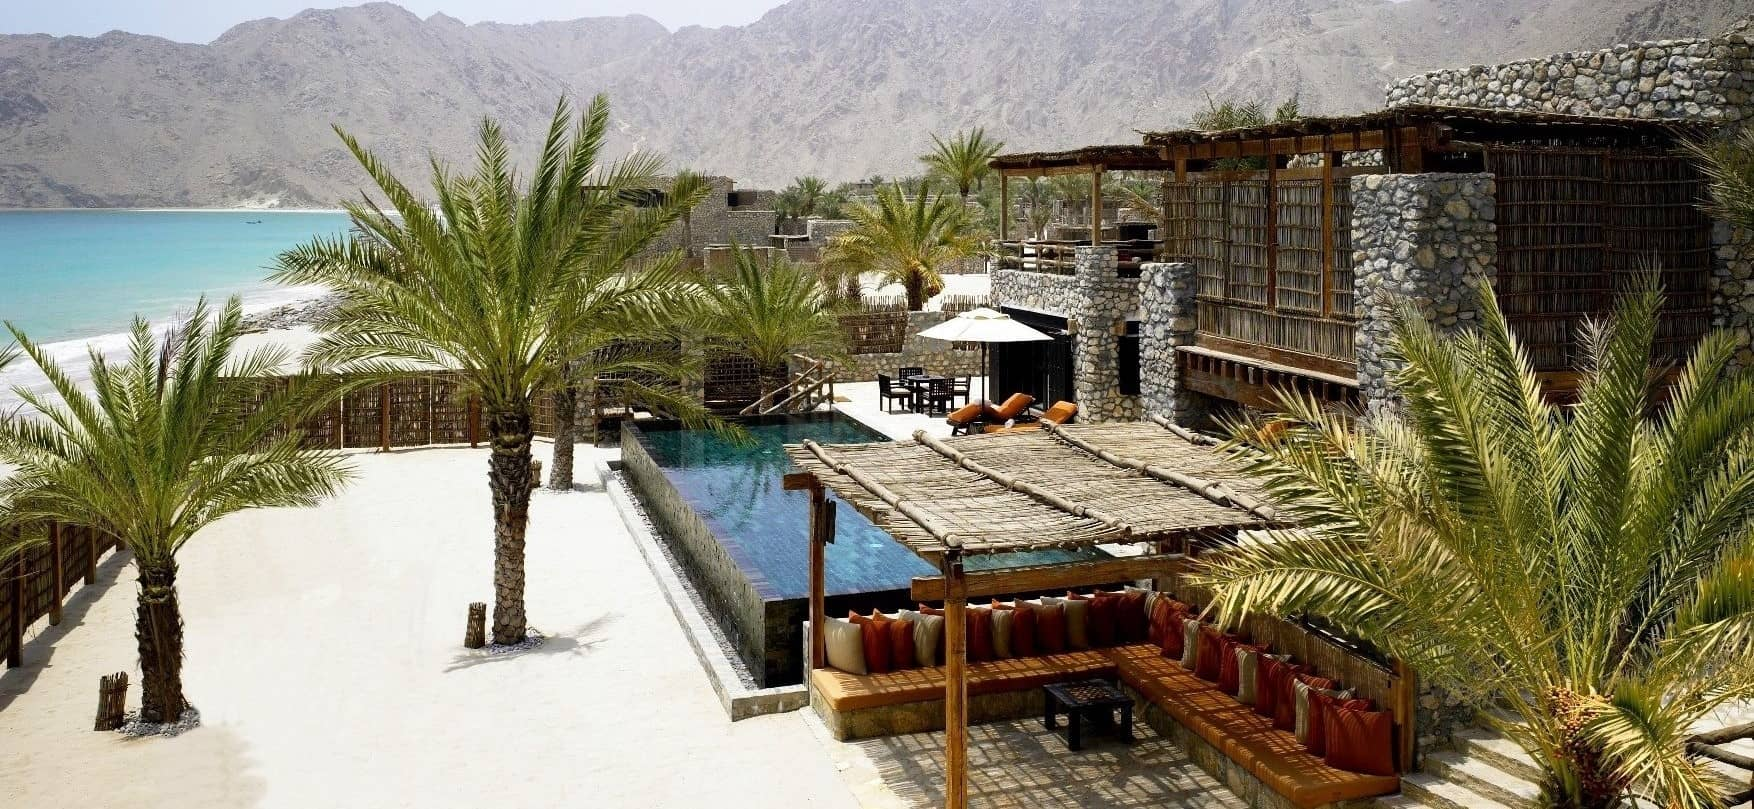 Villa at Six Senses Zighy Bay, Oman